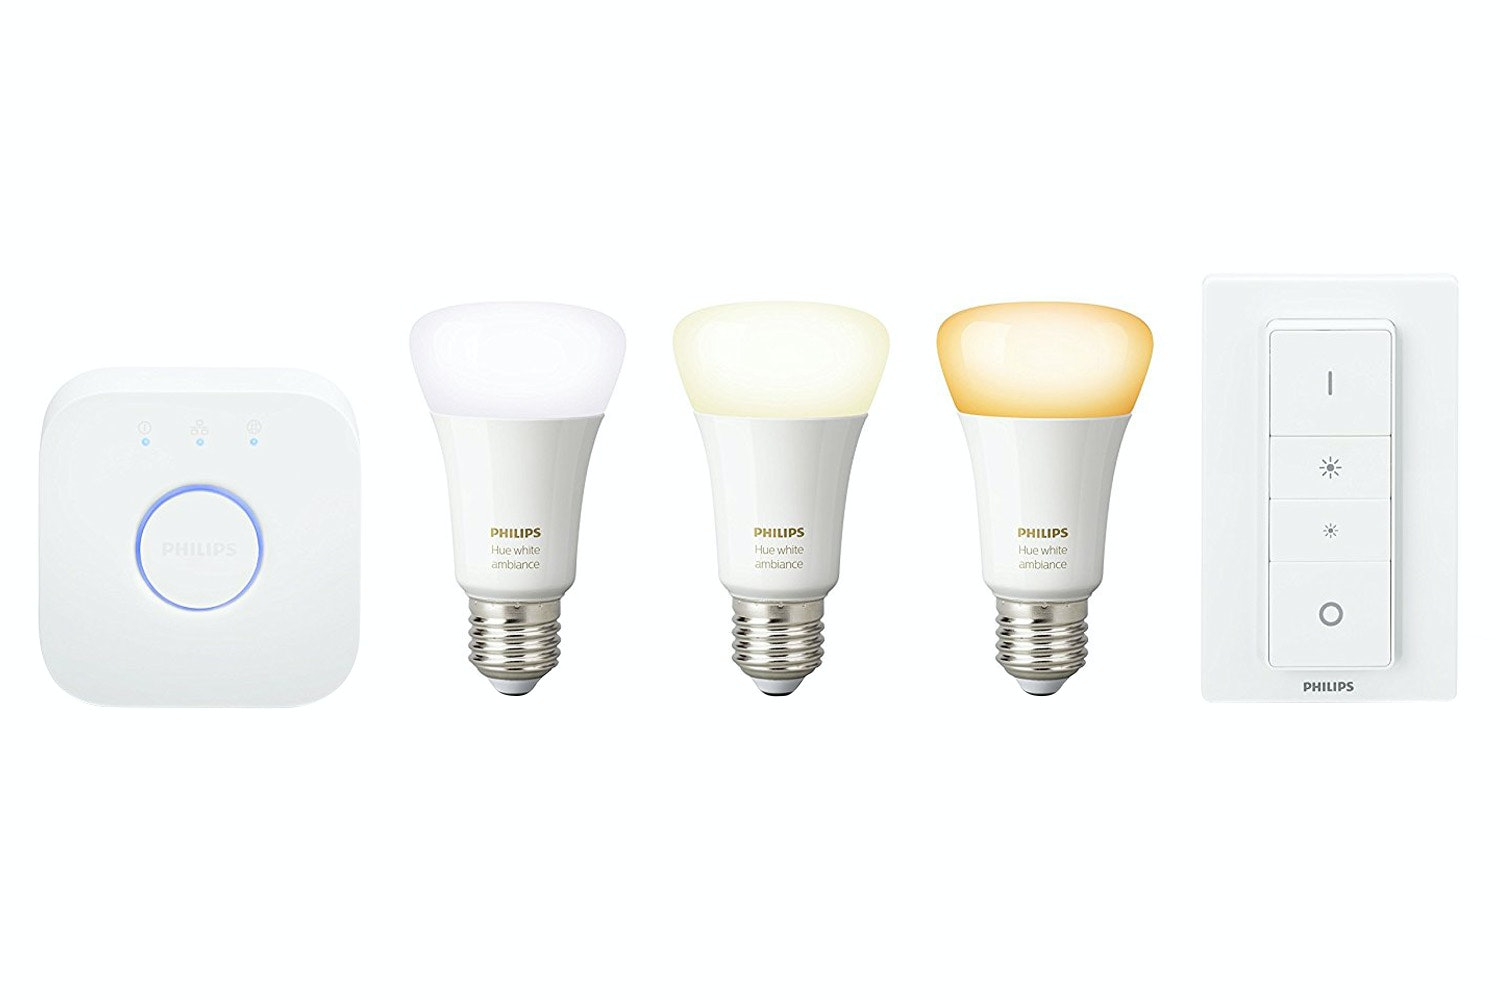 Philips Hue White Ambiance E27 Starter Kit